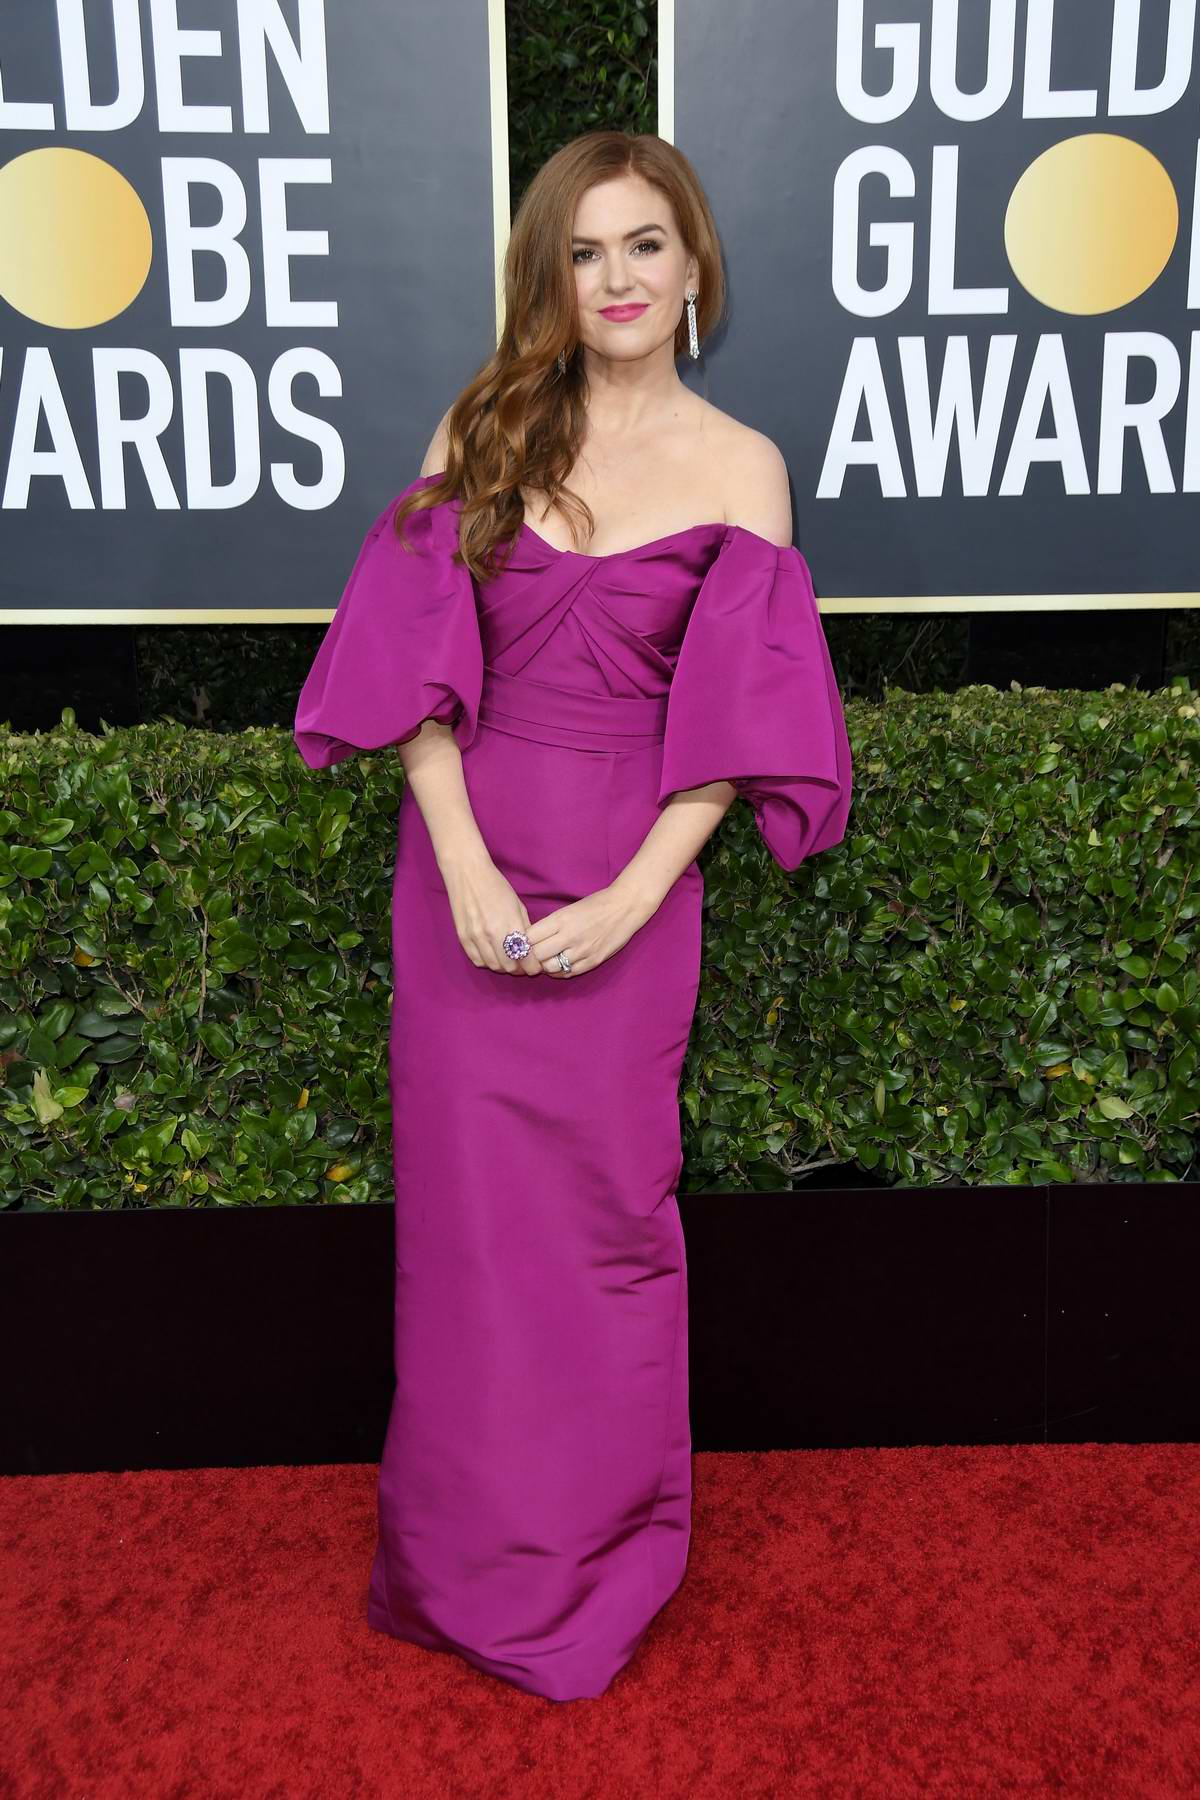 Isla Fisher attends the 77th Annual Golden Globe Awards at The Beverly Hilton Hotel in Beverly Hills, California